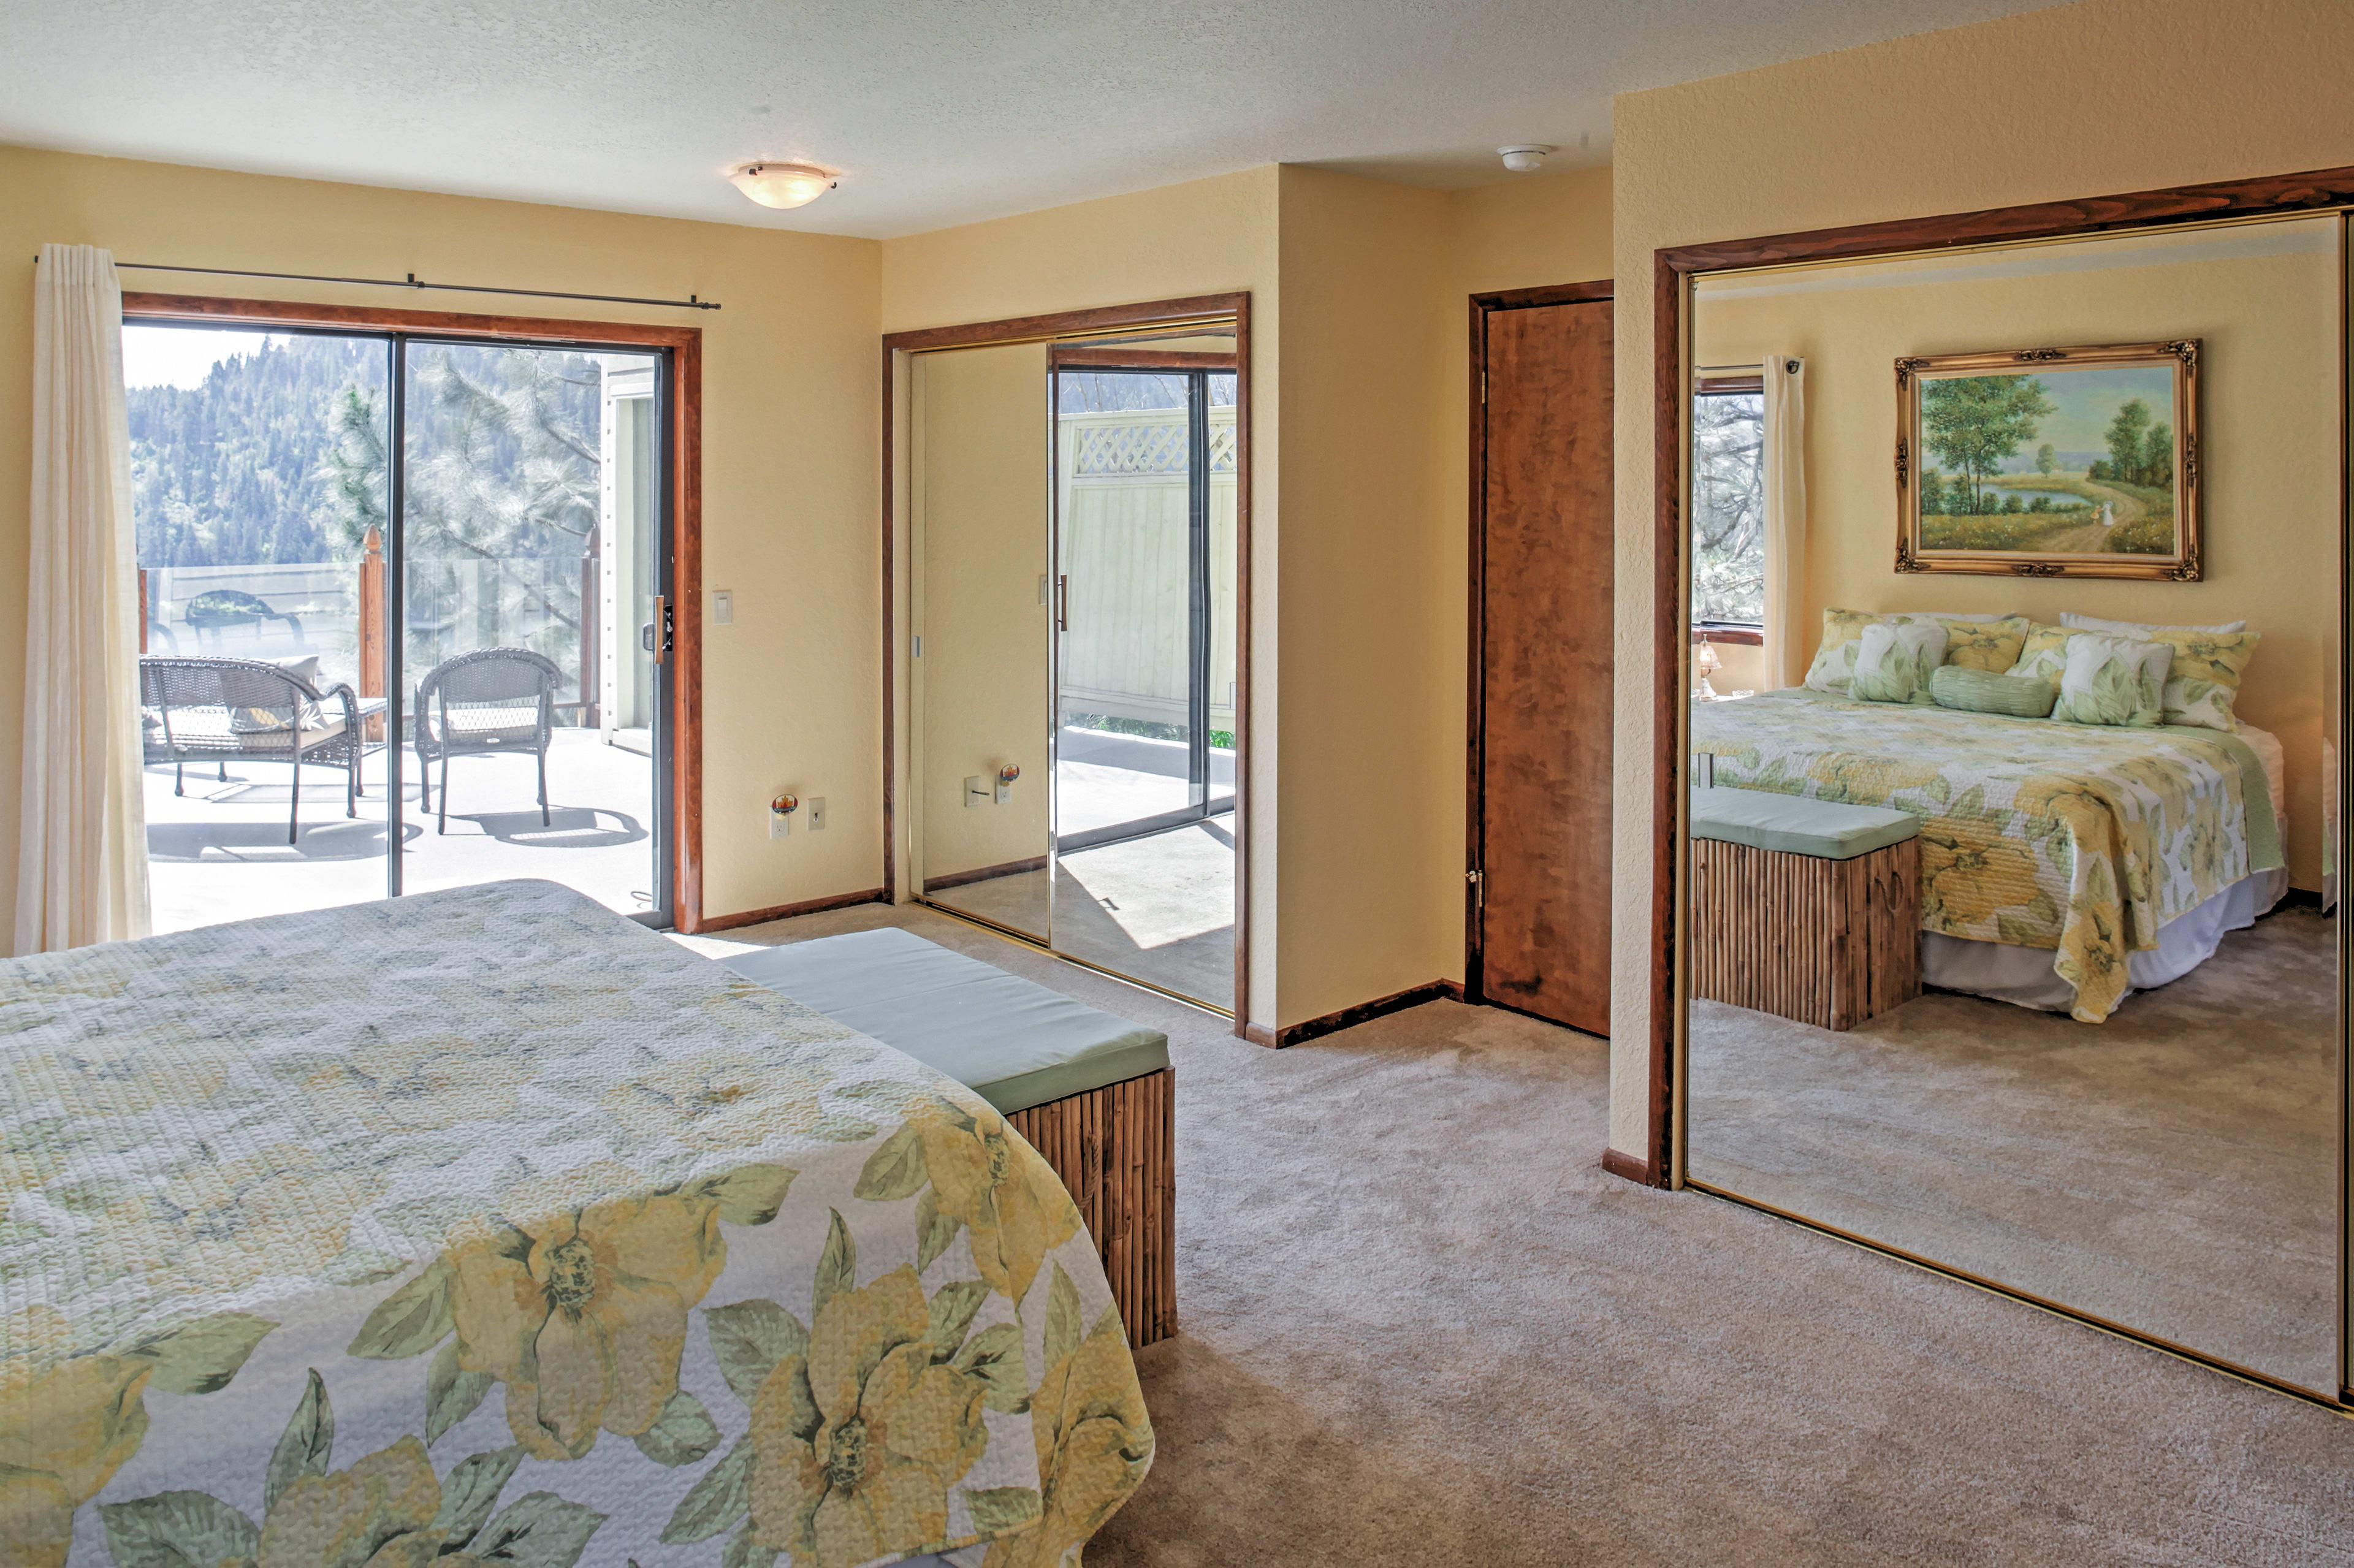 The huge double closets offer generous space to store your belongings!